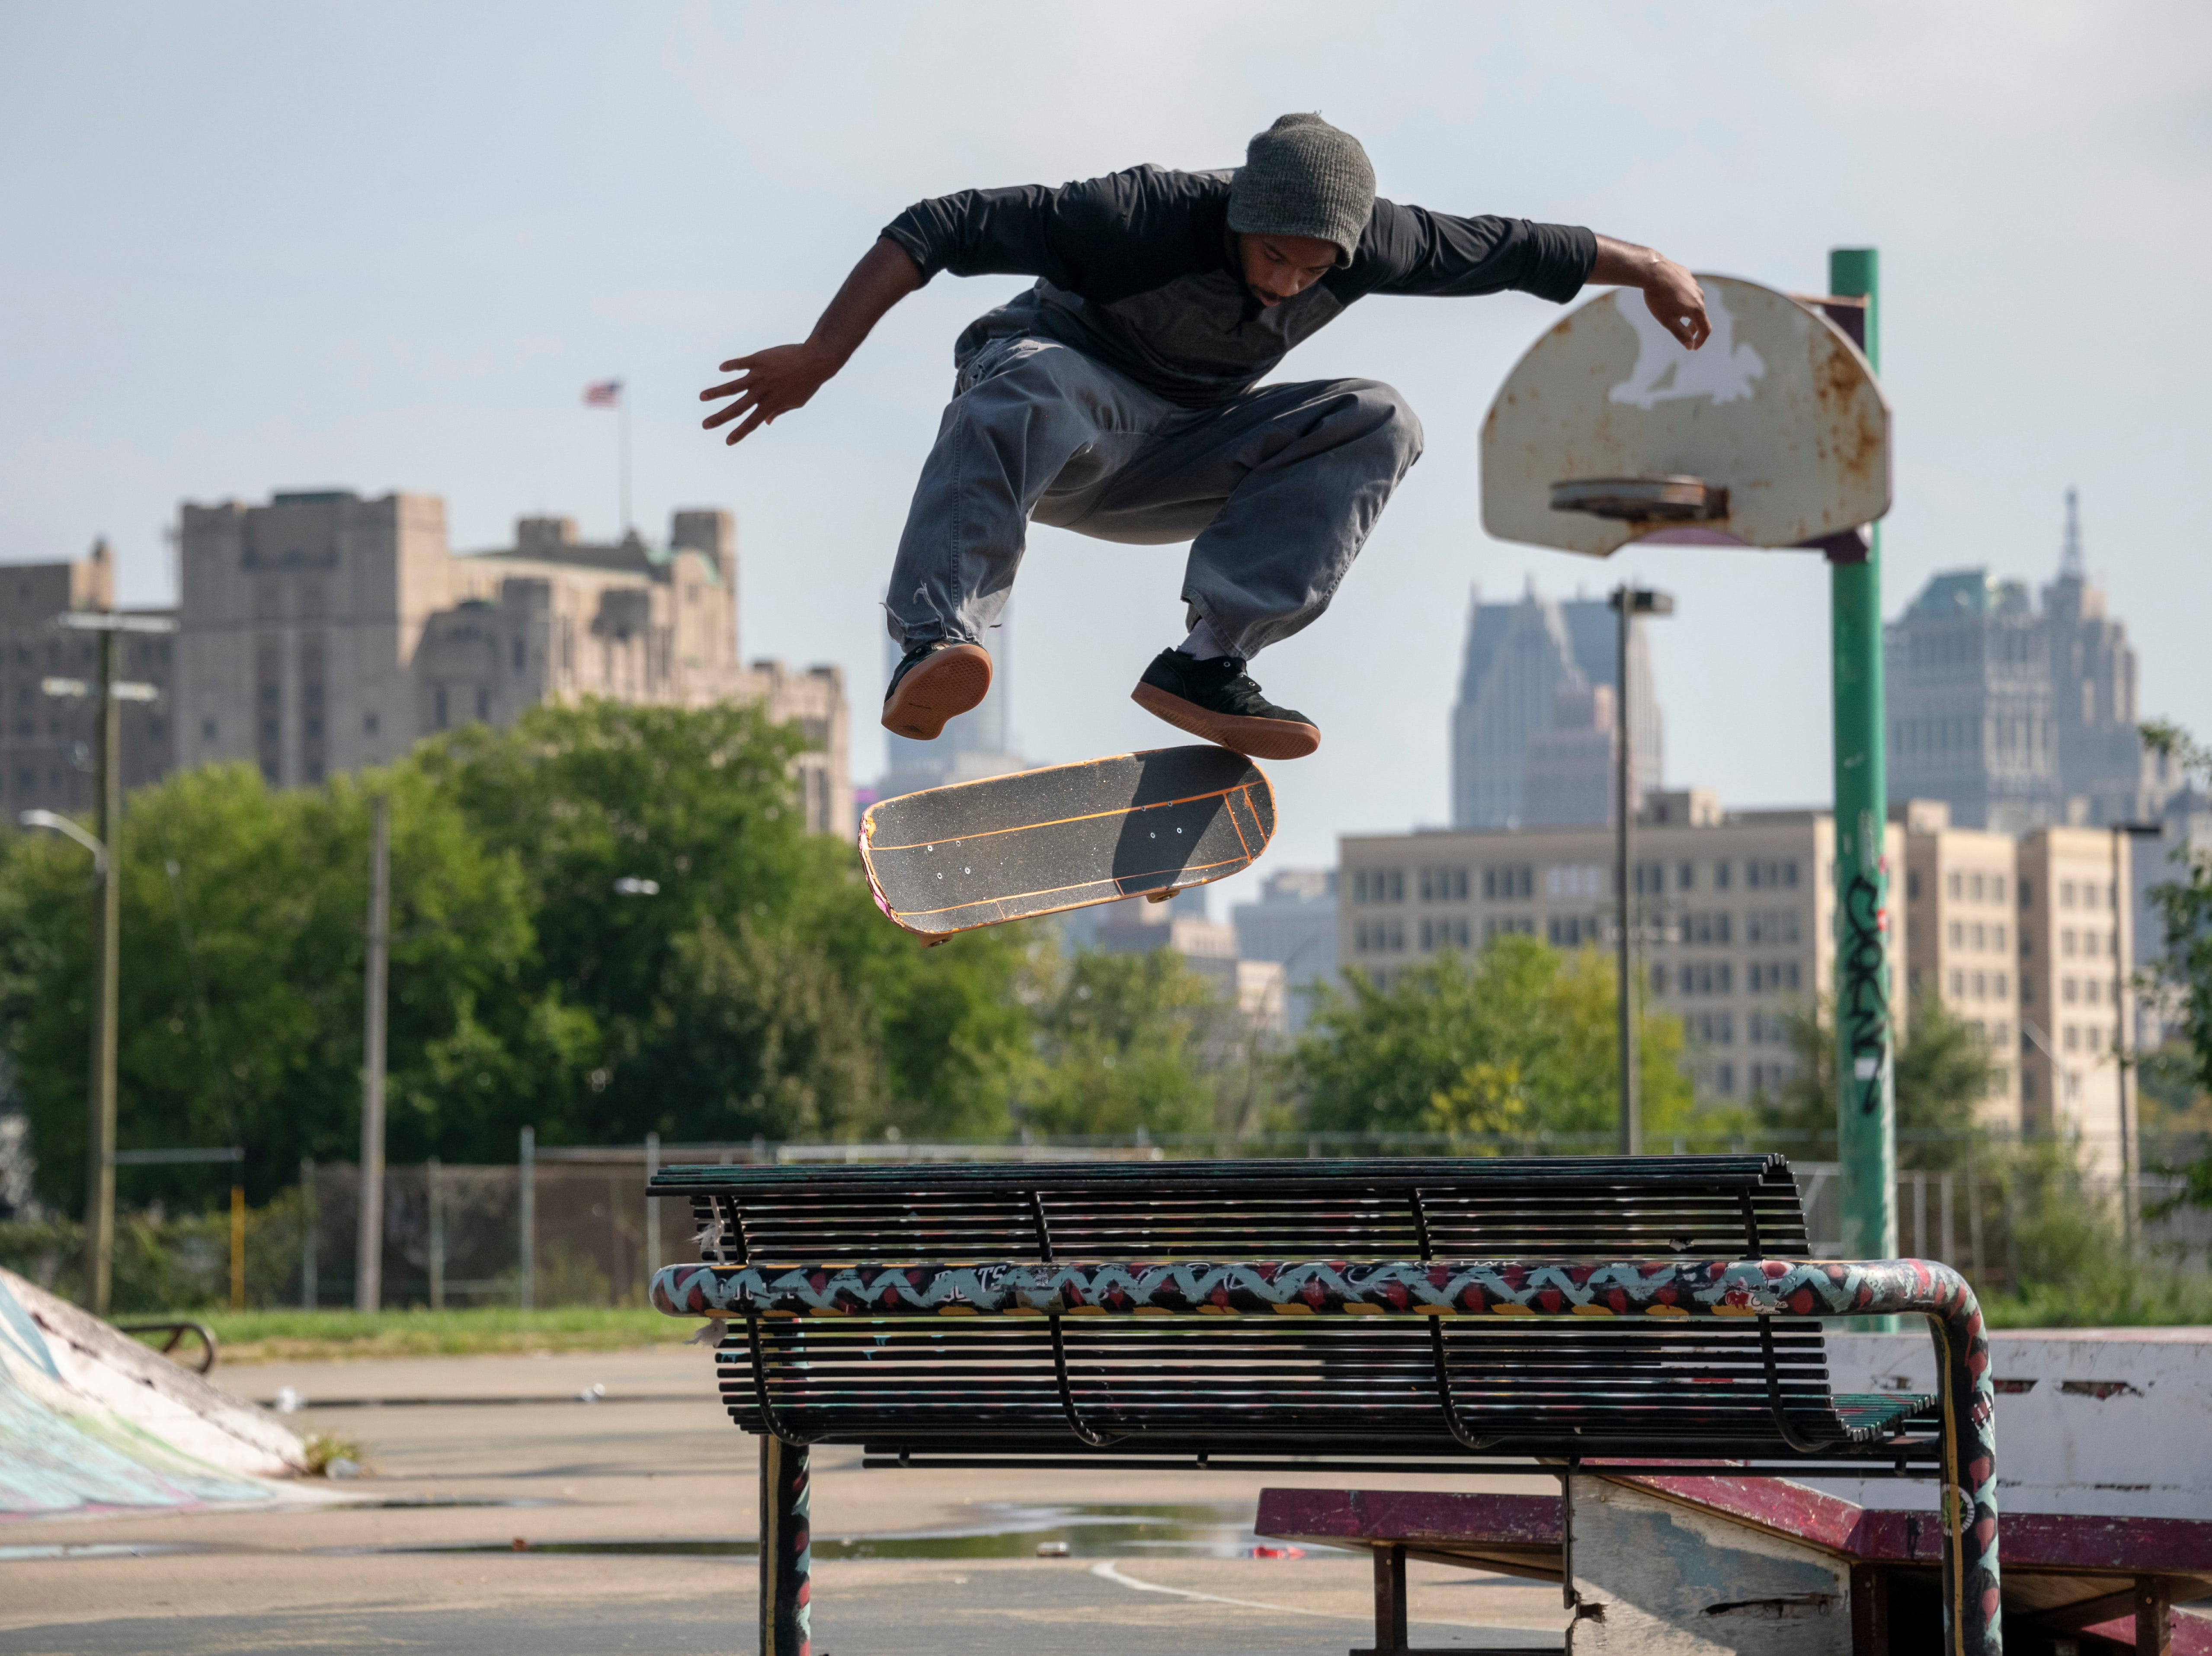 Keviyan Richardson of Detroit jumps over a bench at the Wig skatepark in Detroit, October 3, 2018.